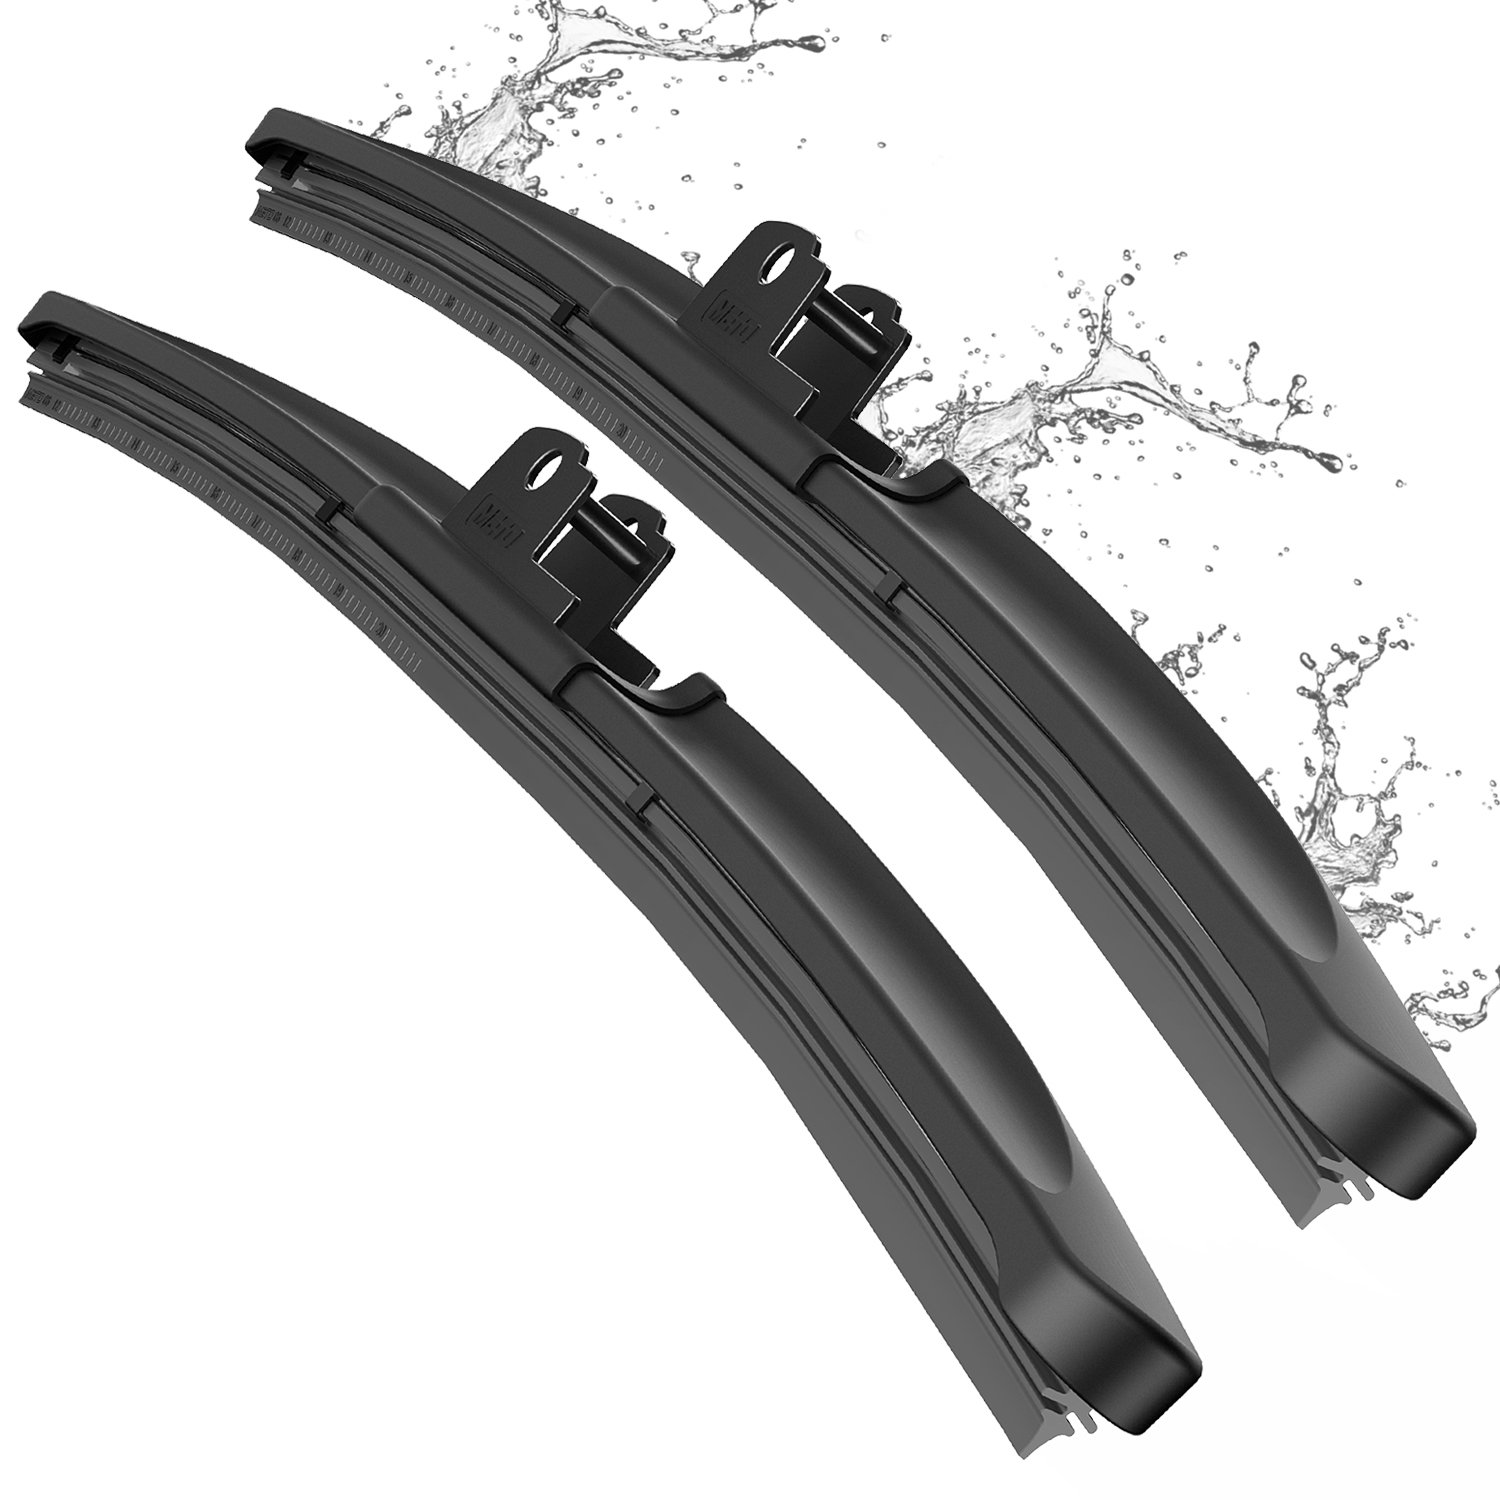 Wiper Blade, METO T6 18'' + 18'' Windshield Wiper : Water Repellency Polymer Materials Silence Blade, Up to 60% Longer Life (Set of 2)